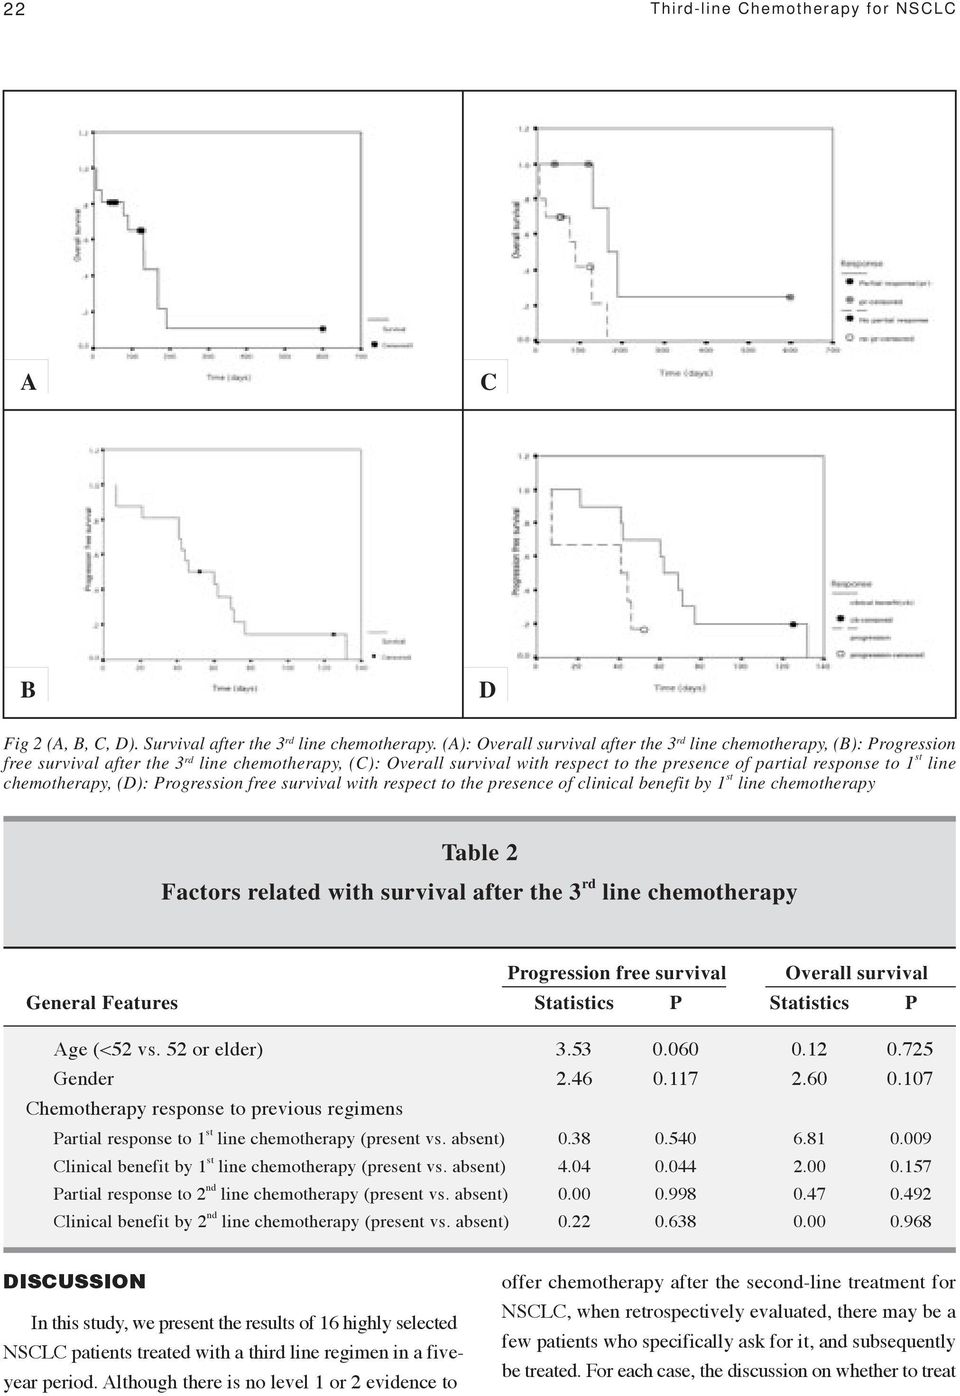 line chemotherapy, (D): Progression free survival with respect to the presence of clinical benefit by 1 st line chemotherapy Table 2 Factors related with survival after the 3 rd line chemotherapy